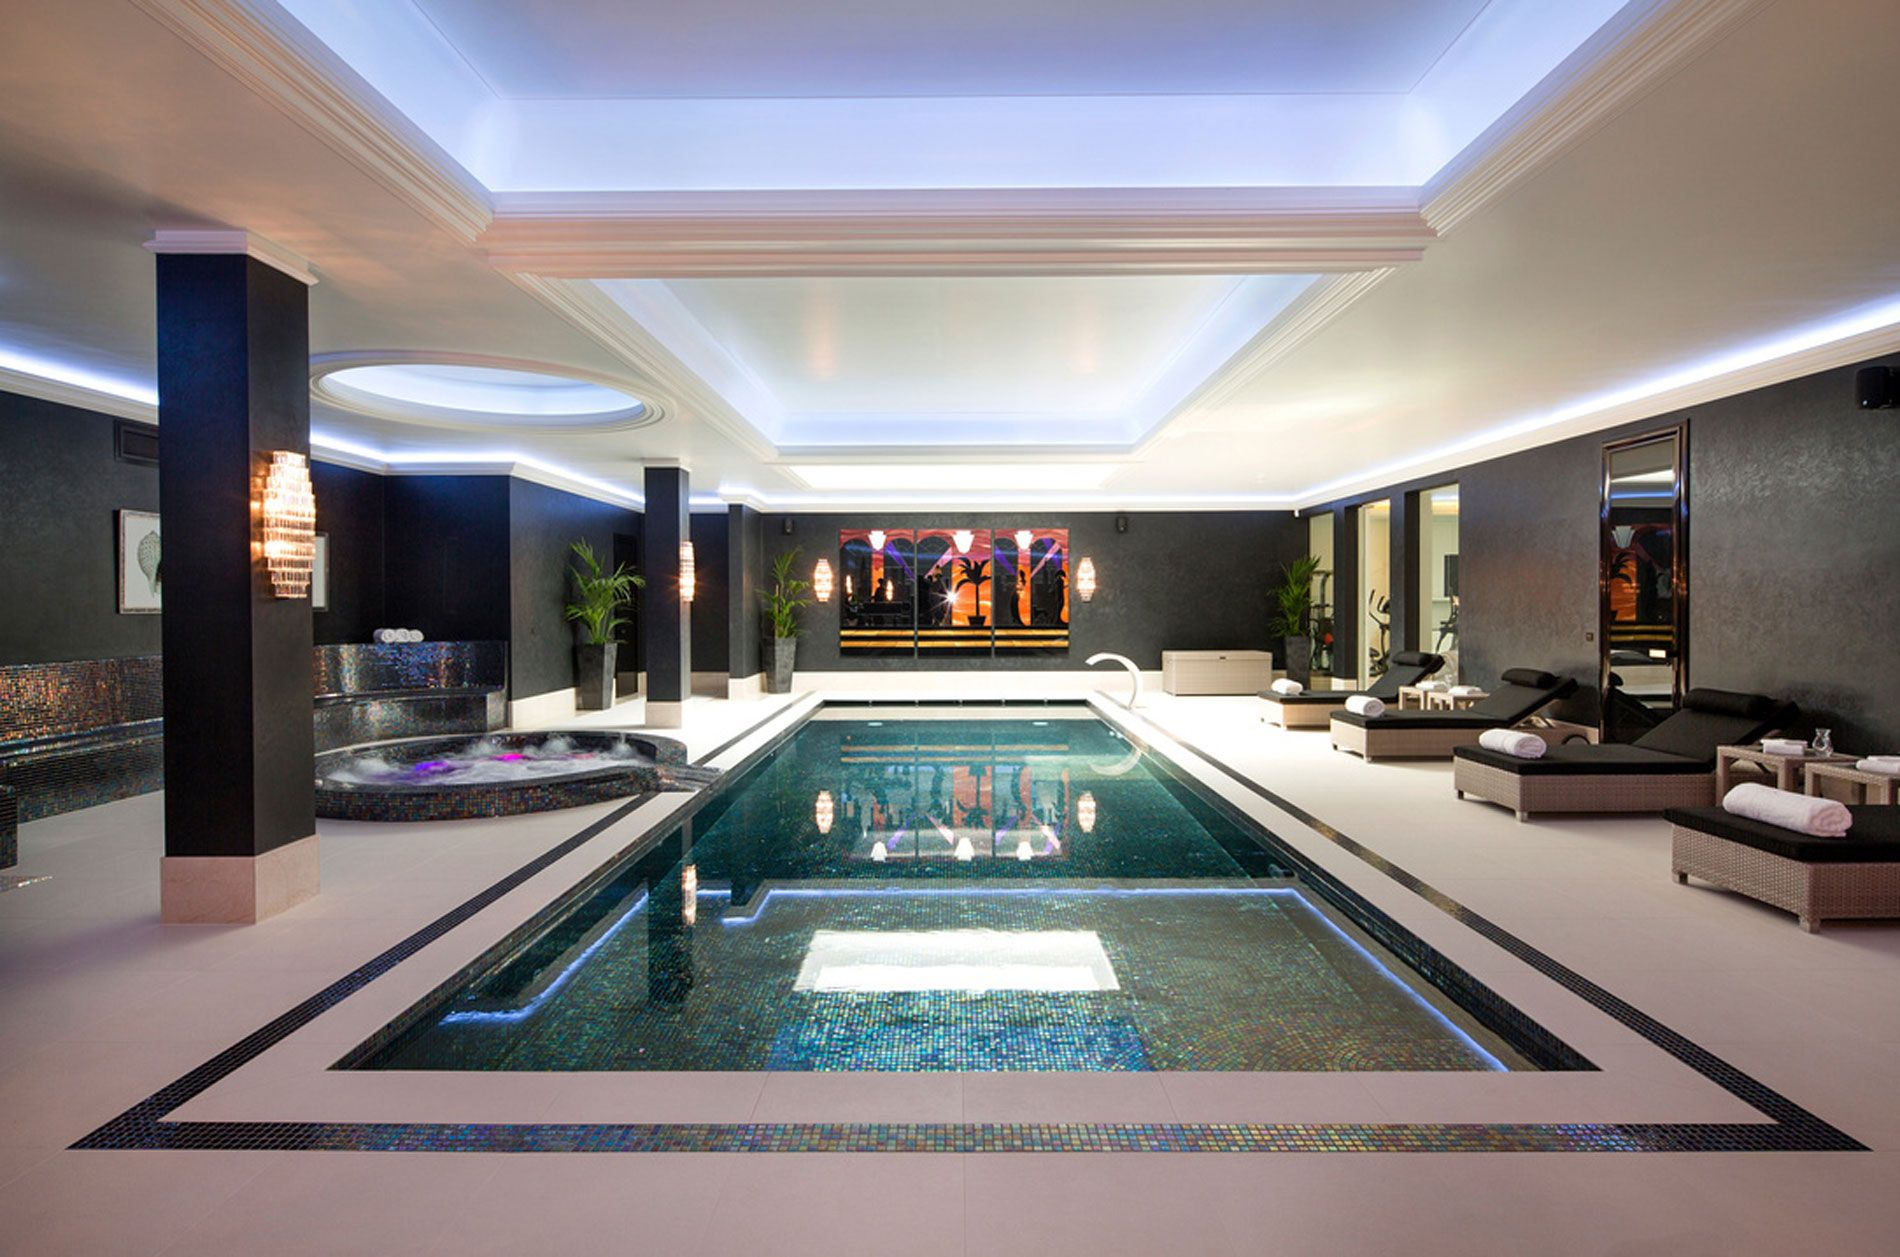 Indoor basement private luxury swimming pools google